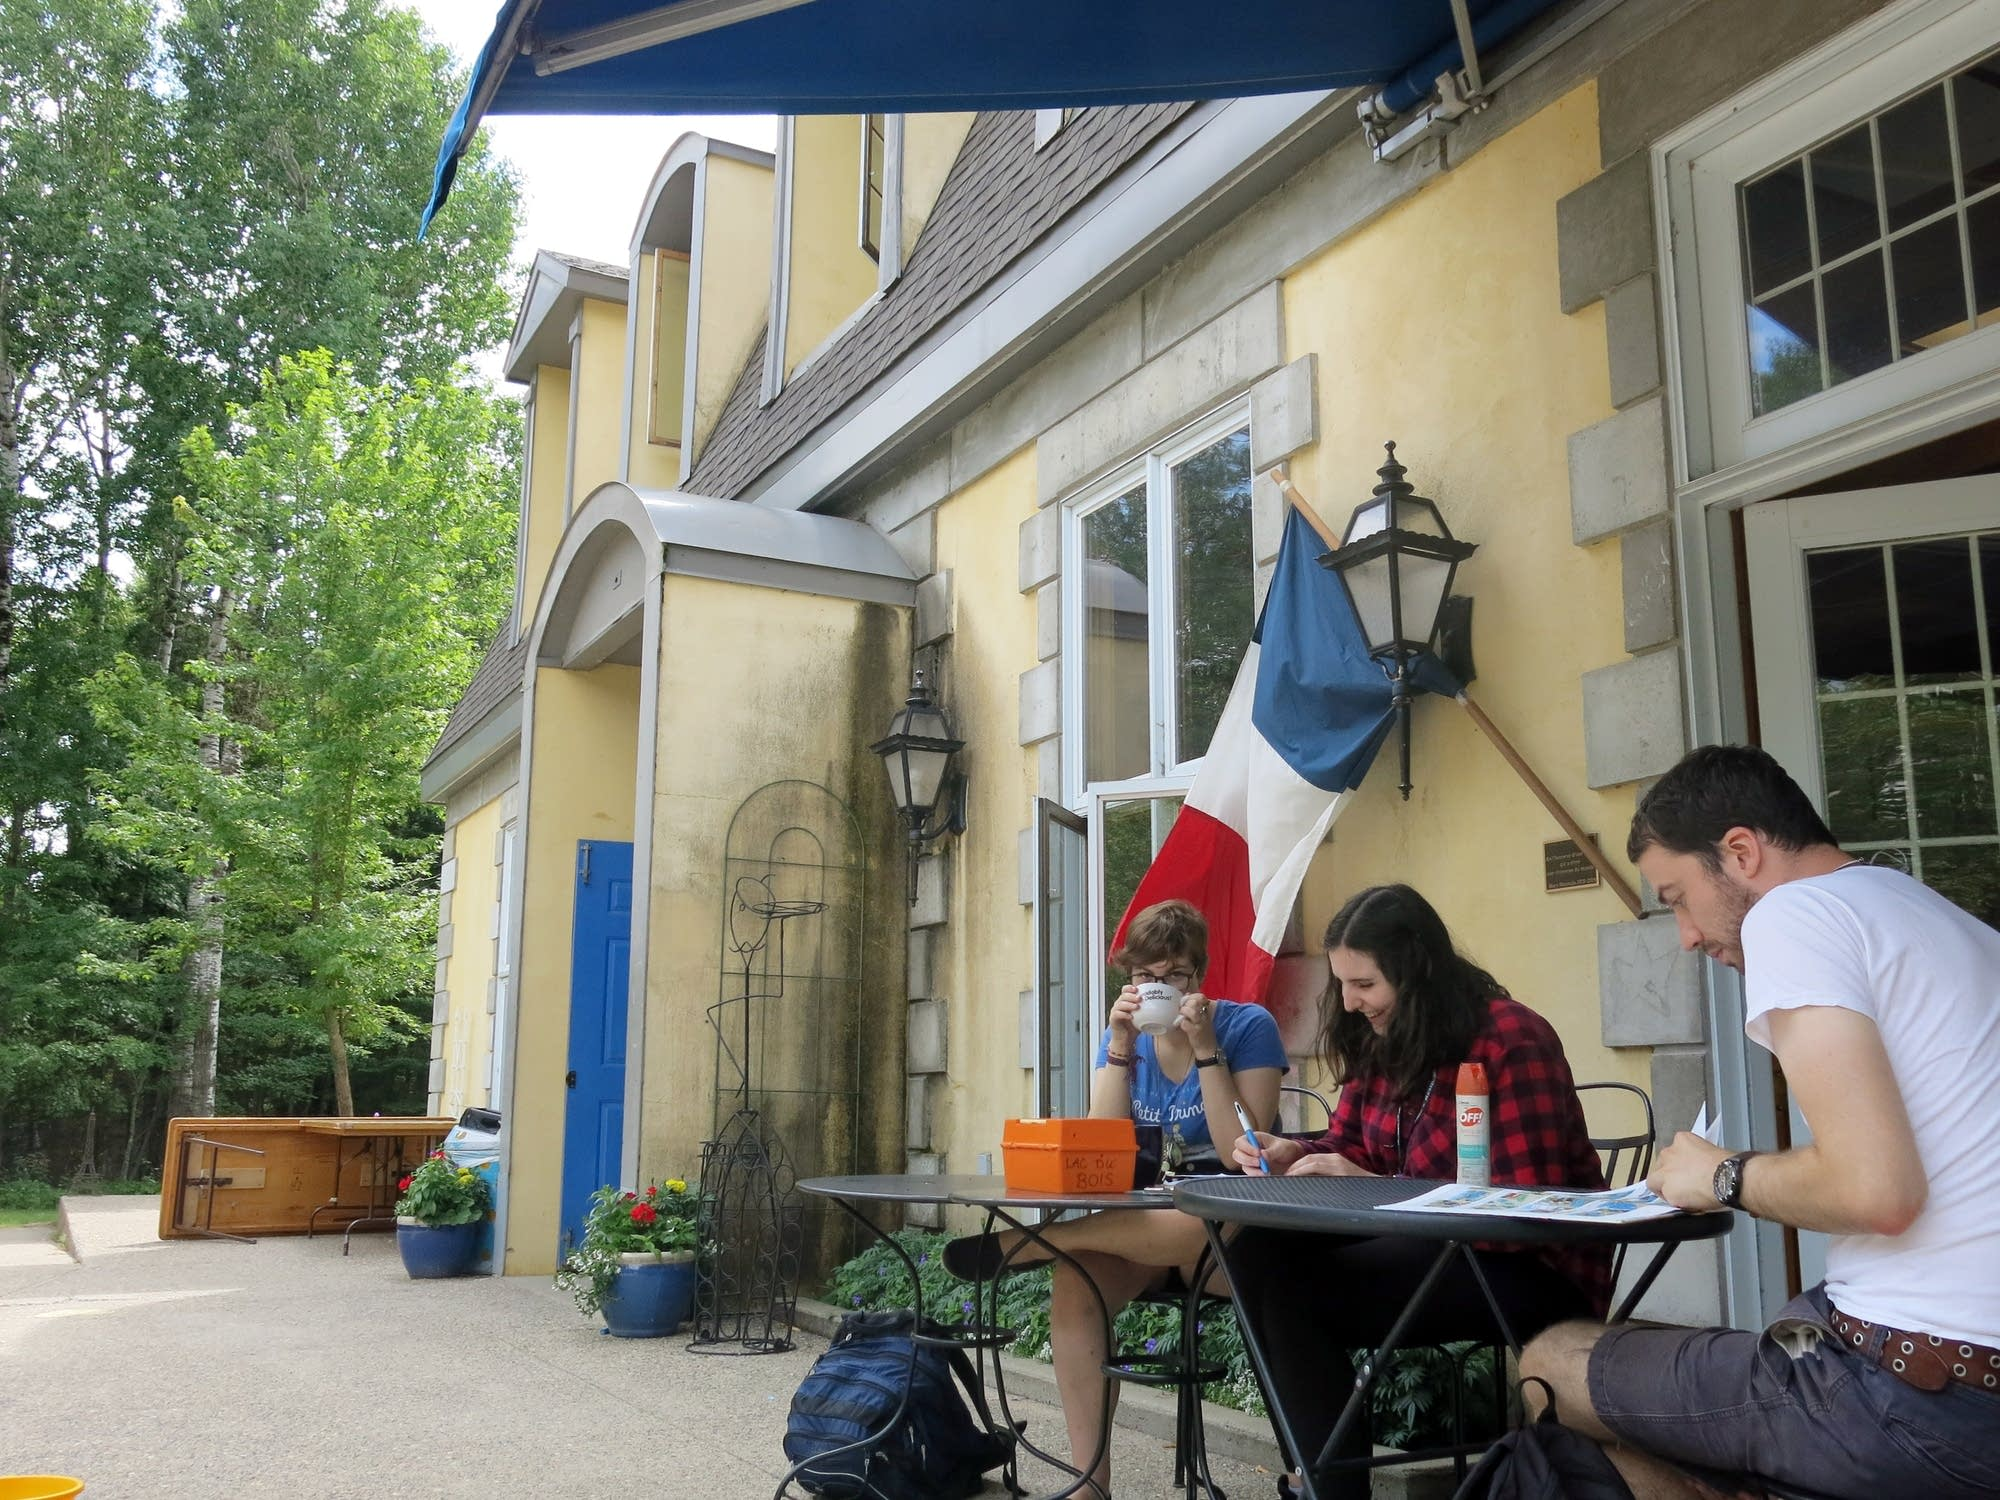 Students study outside at the French village.